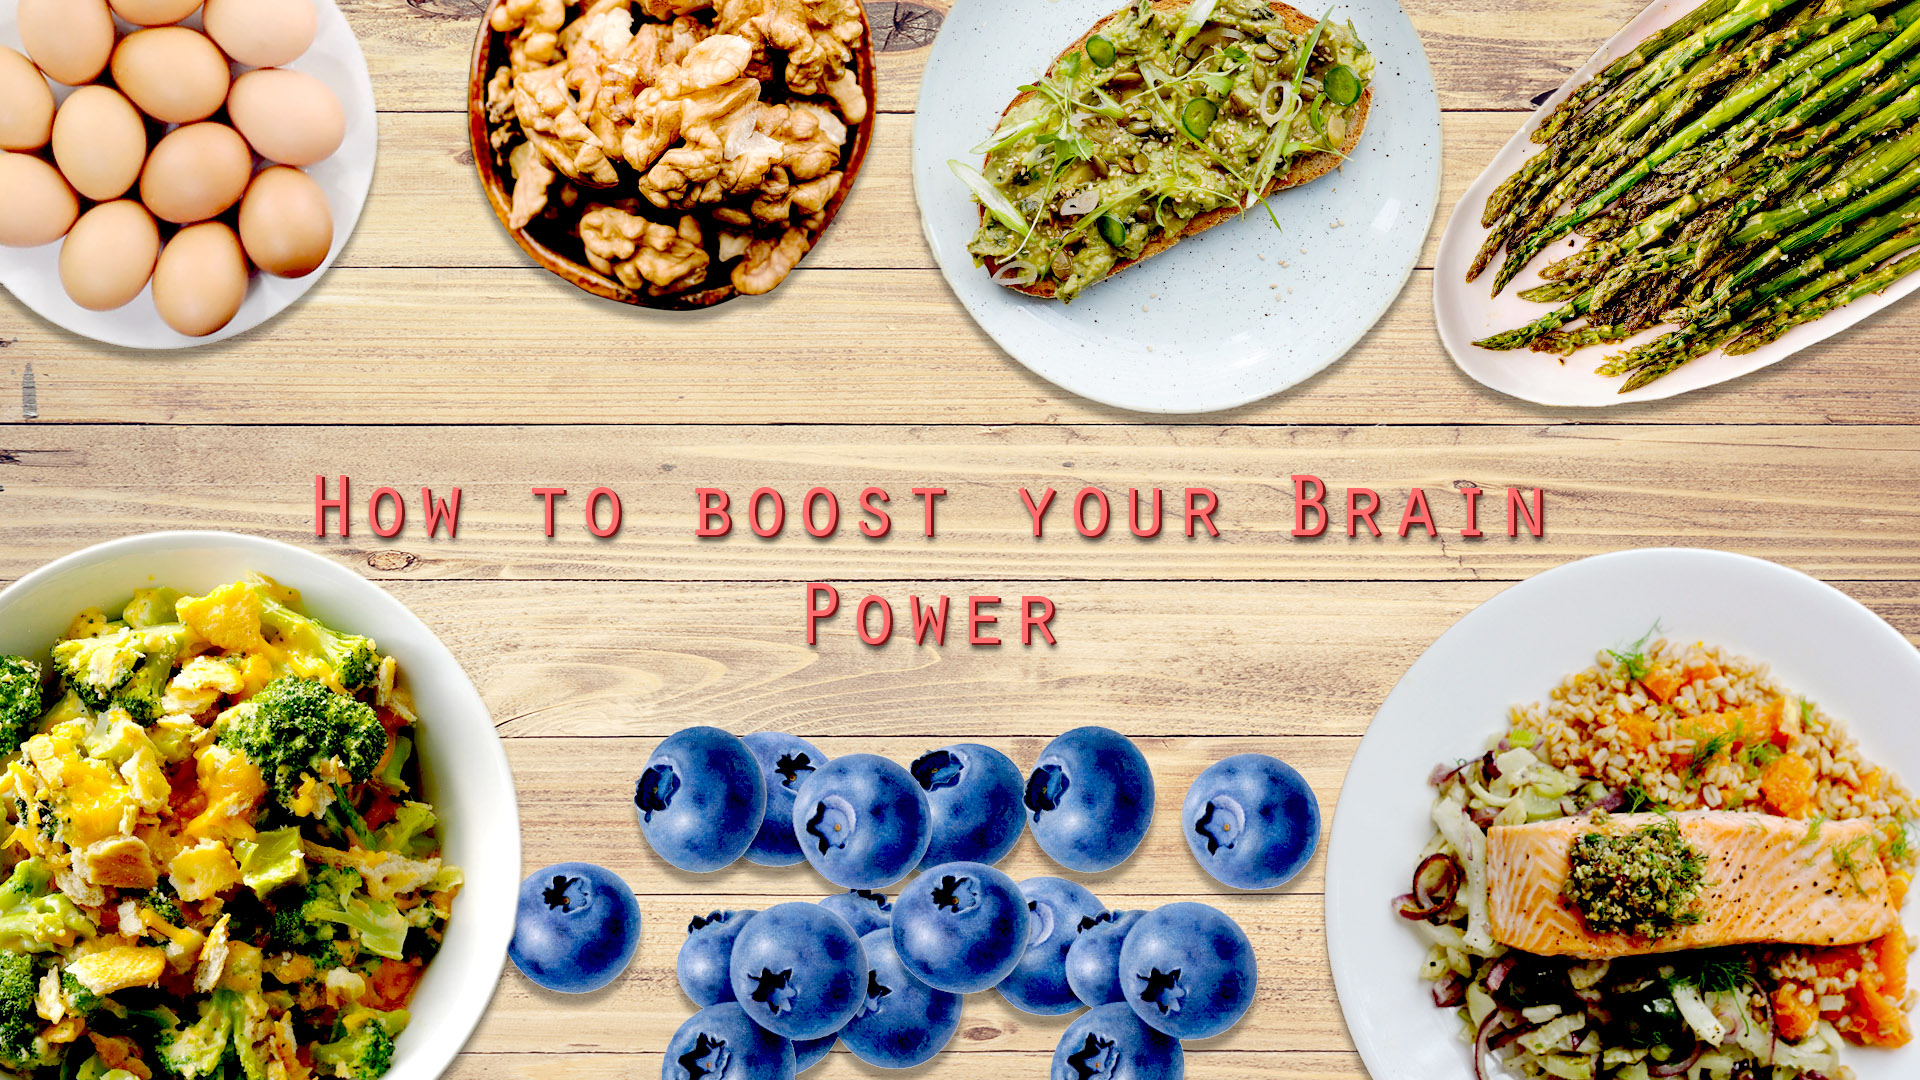 How_to_Boos_your_brain_power